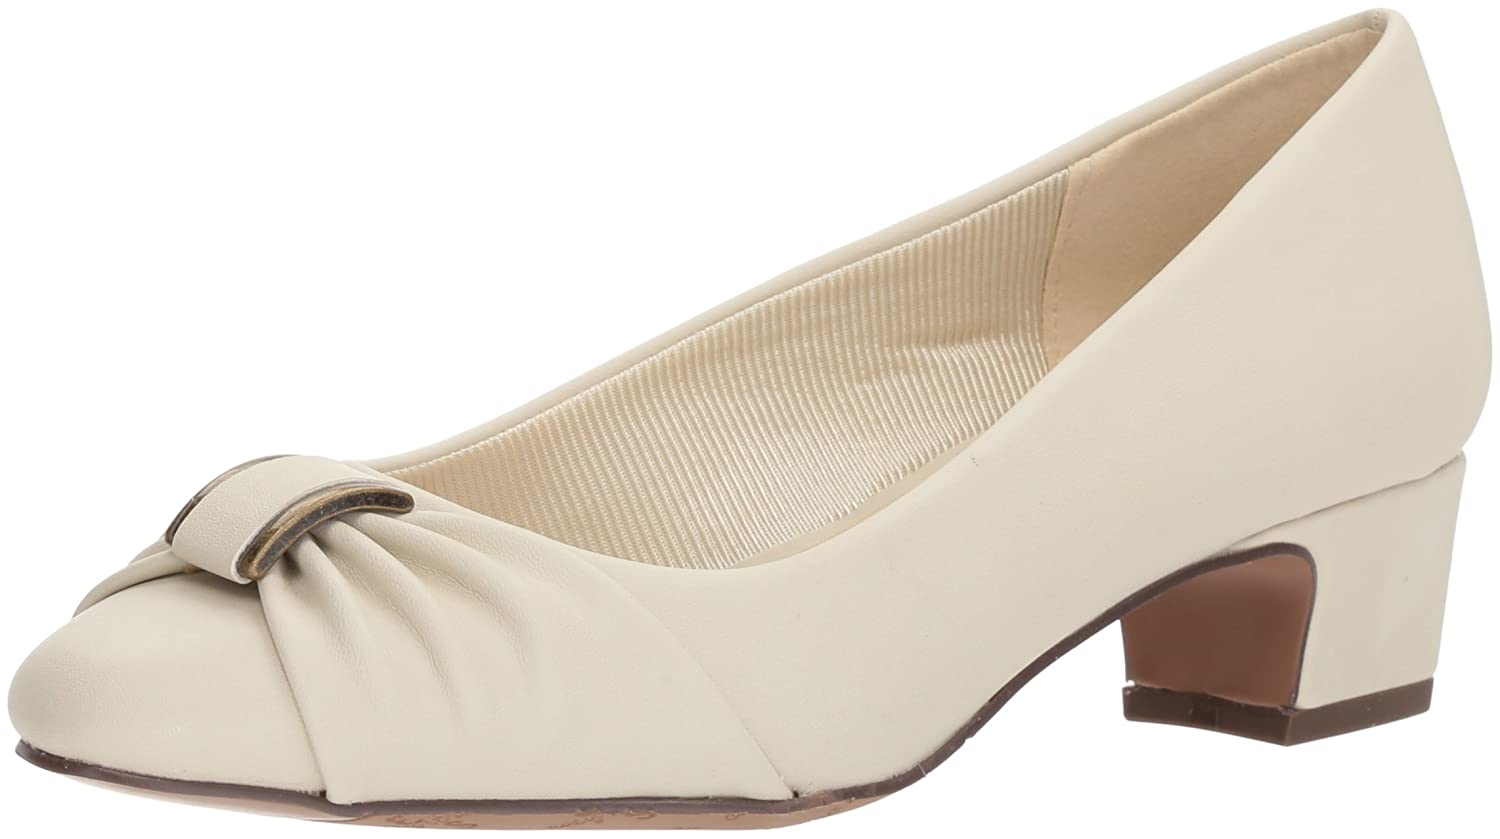 Easy Street Women's Eloise Pump B077ZL5F1G 6.5 W US|Bone